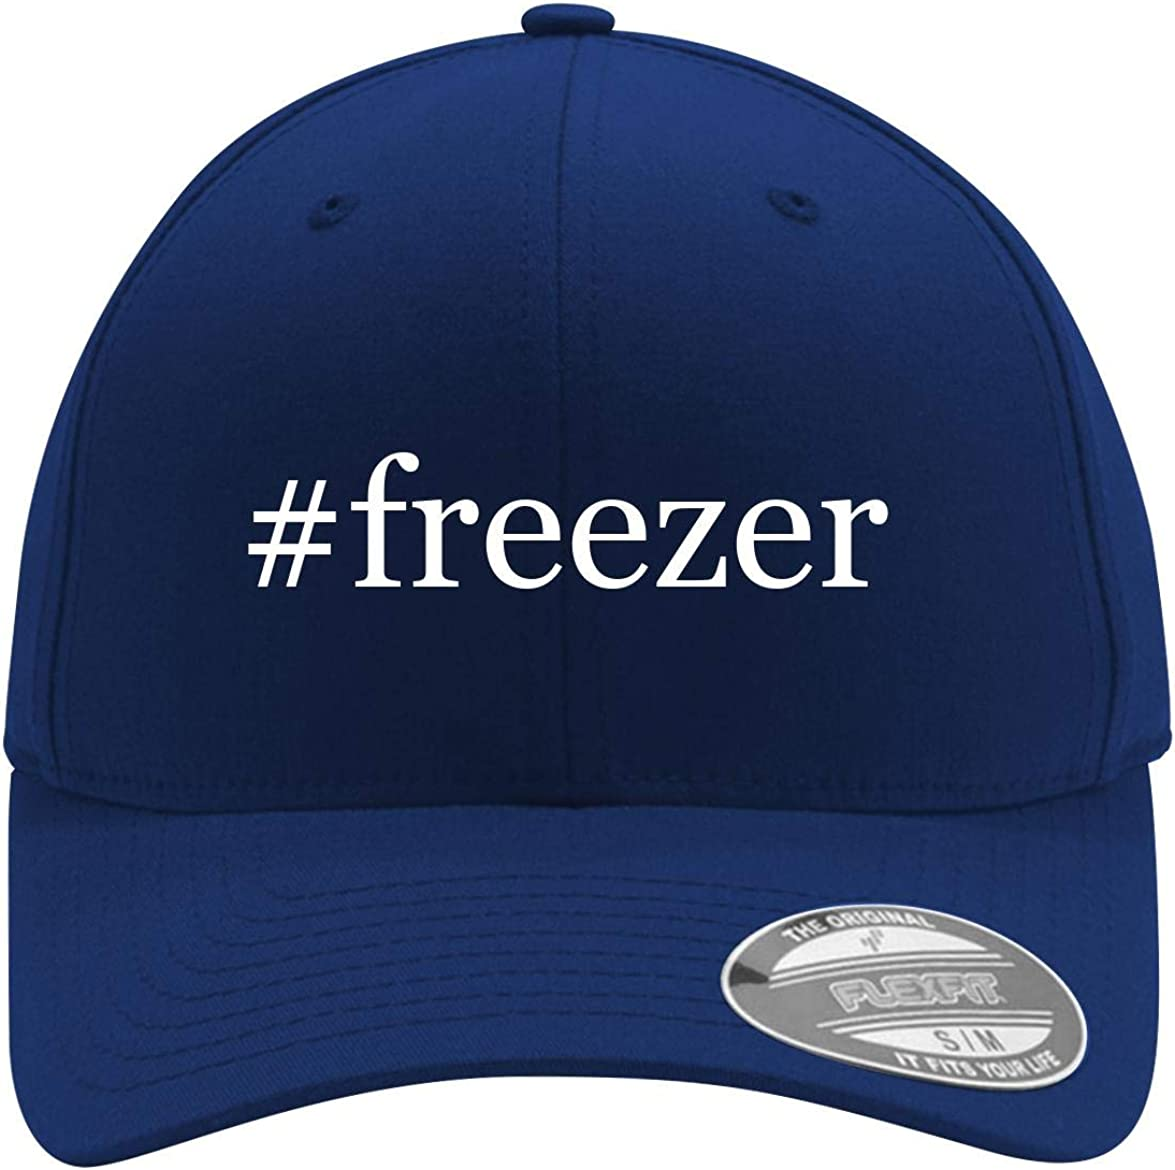 #freezer - Adult Men's Hashtag Flexfit Baseball Hat Cap